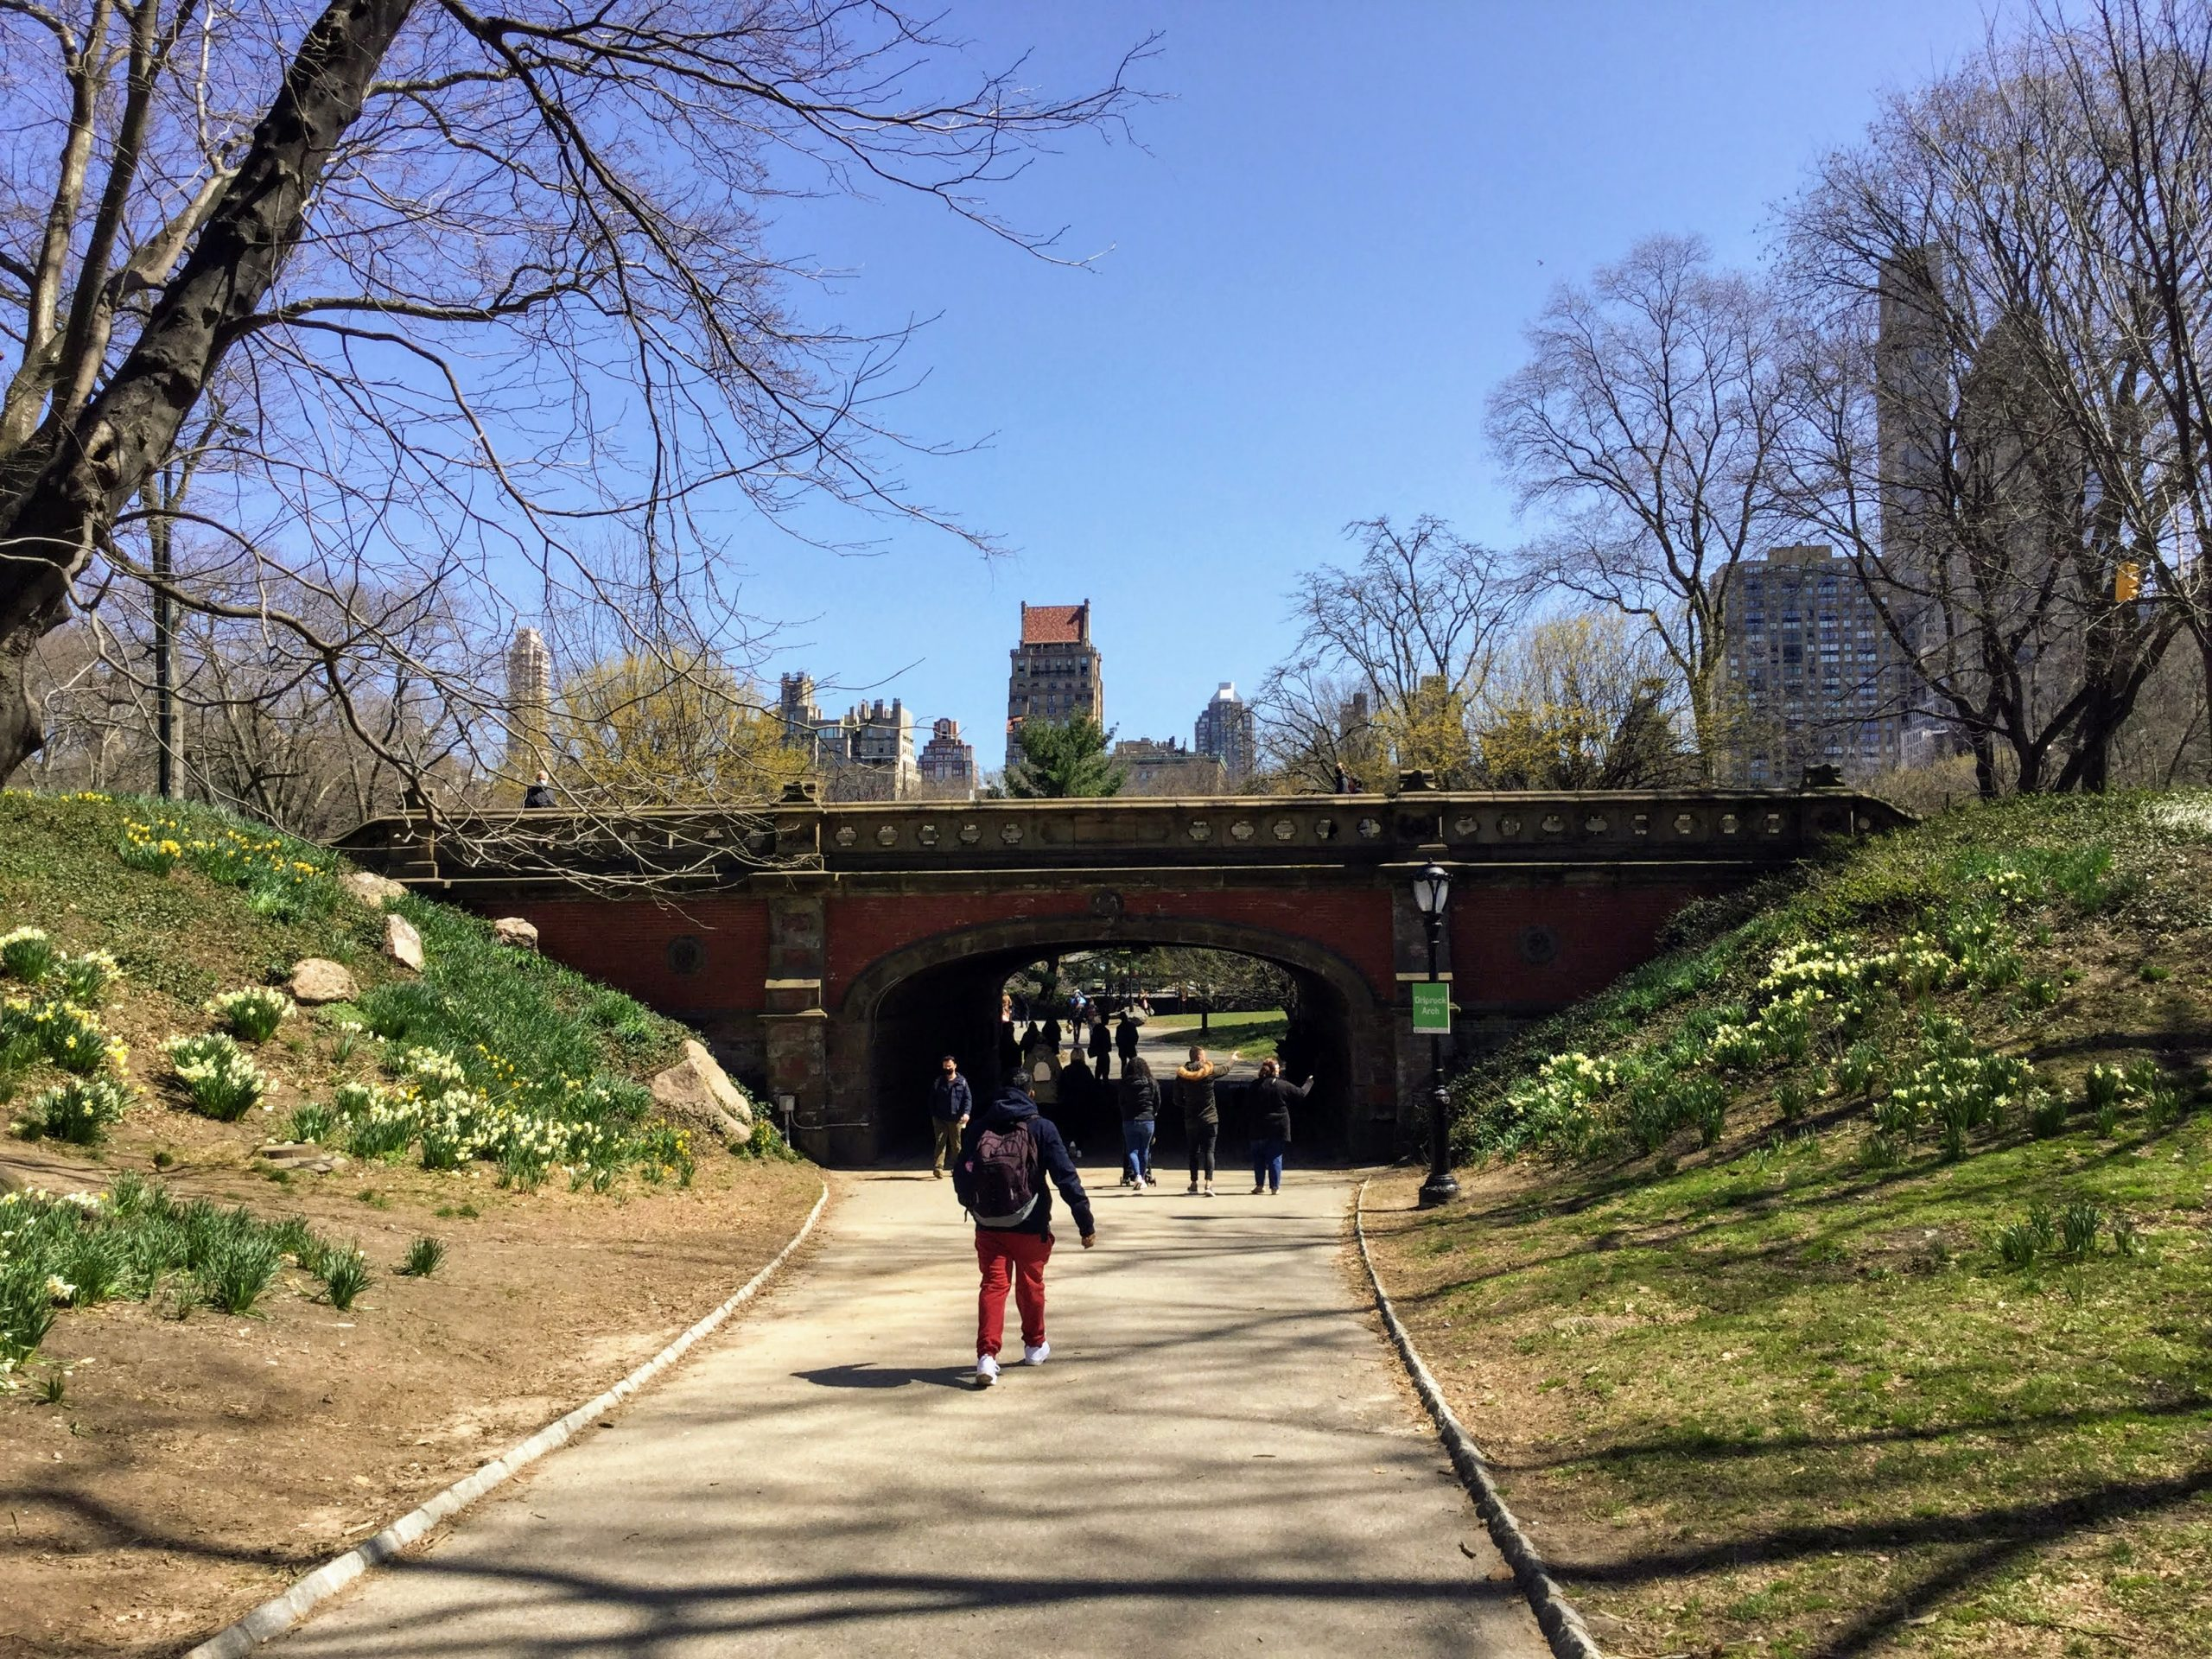 Early Spring in Central Park